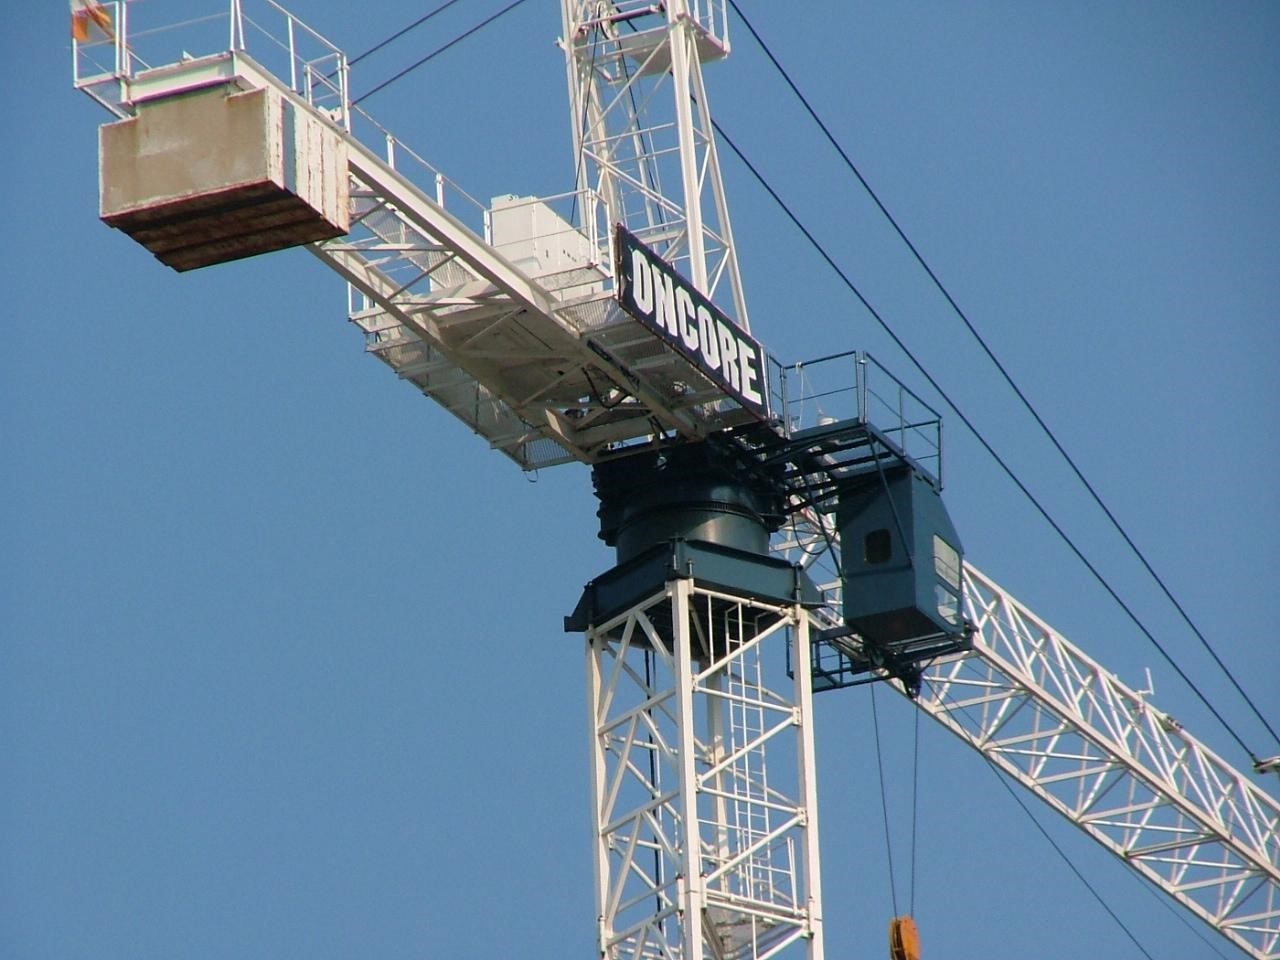 Construction safety crane